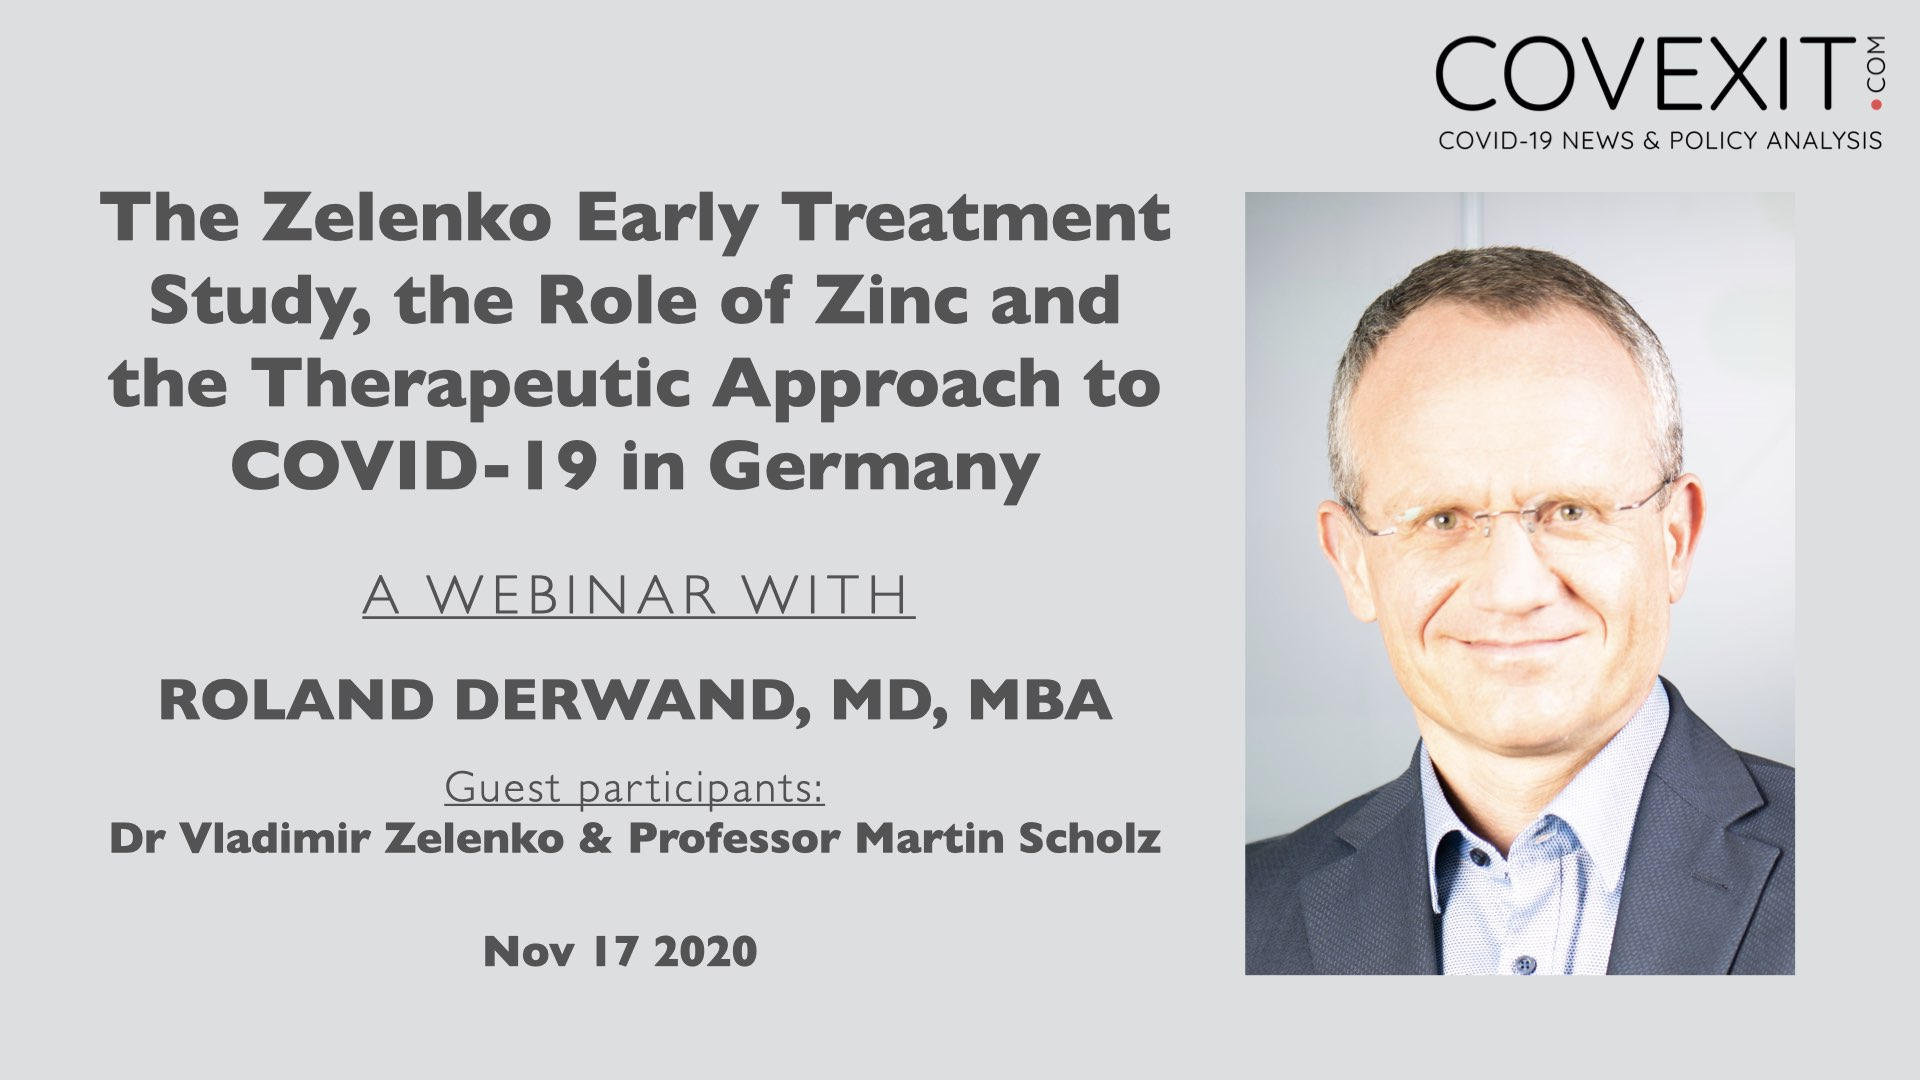 The Zelenko Early Treatment Study, the Role of Zinc, the Therapeutic Approach to COVID-19 in Germany